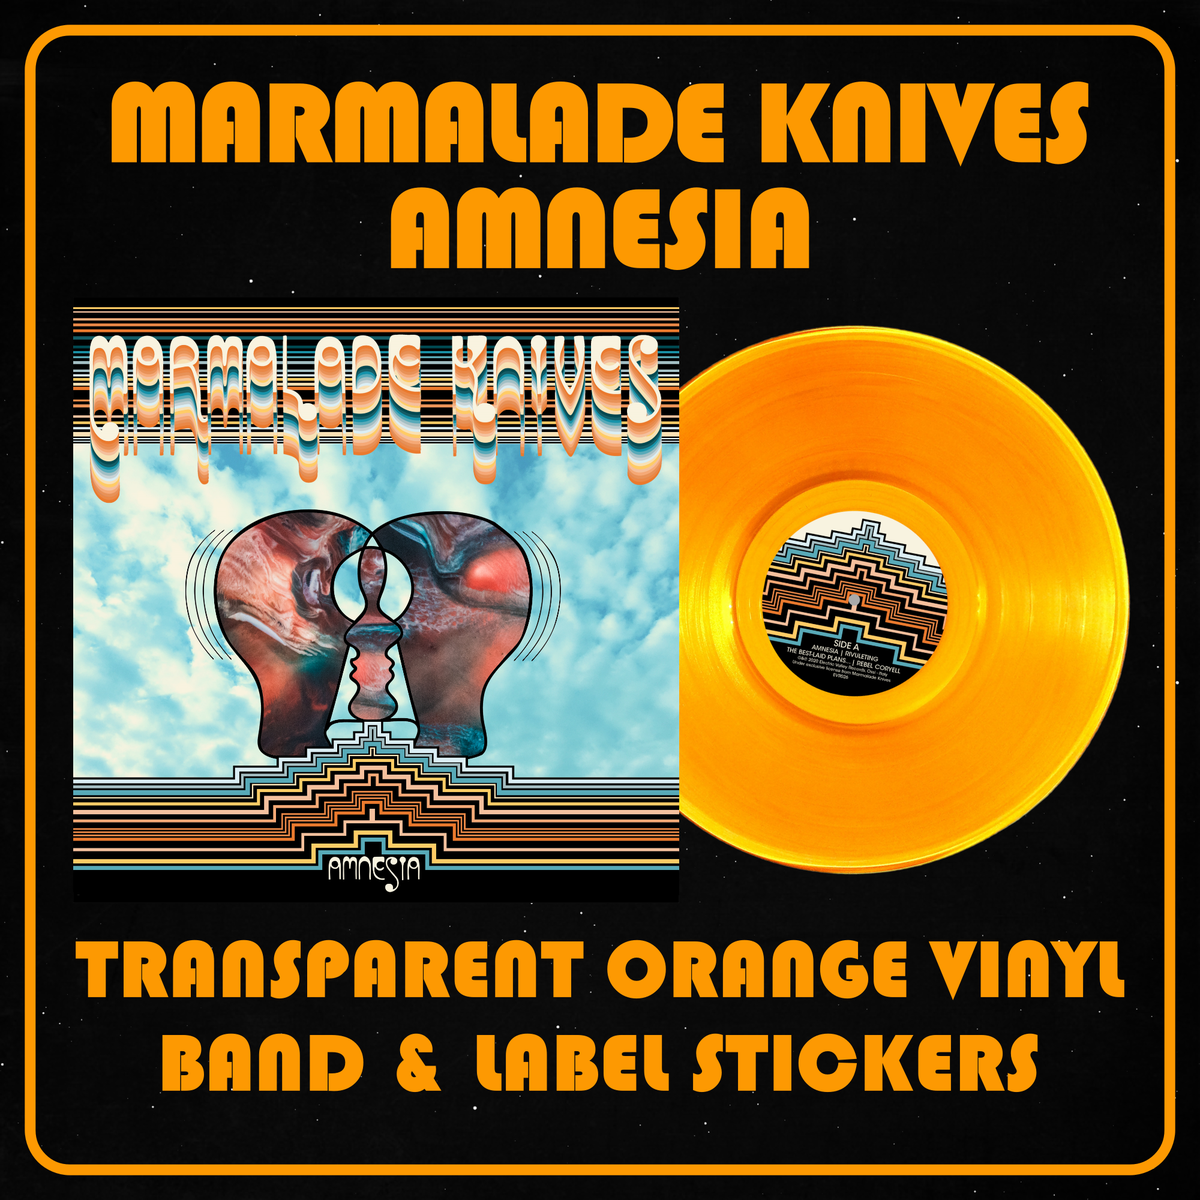 Image of Marmalade Knives - Amnesia Transparent Orange Vinyl